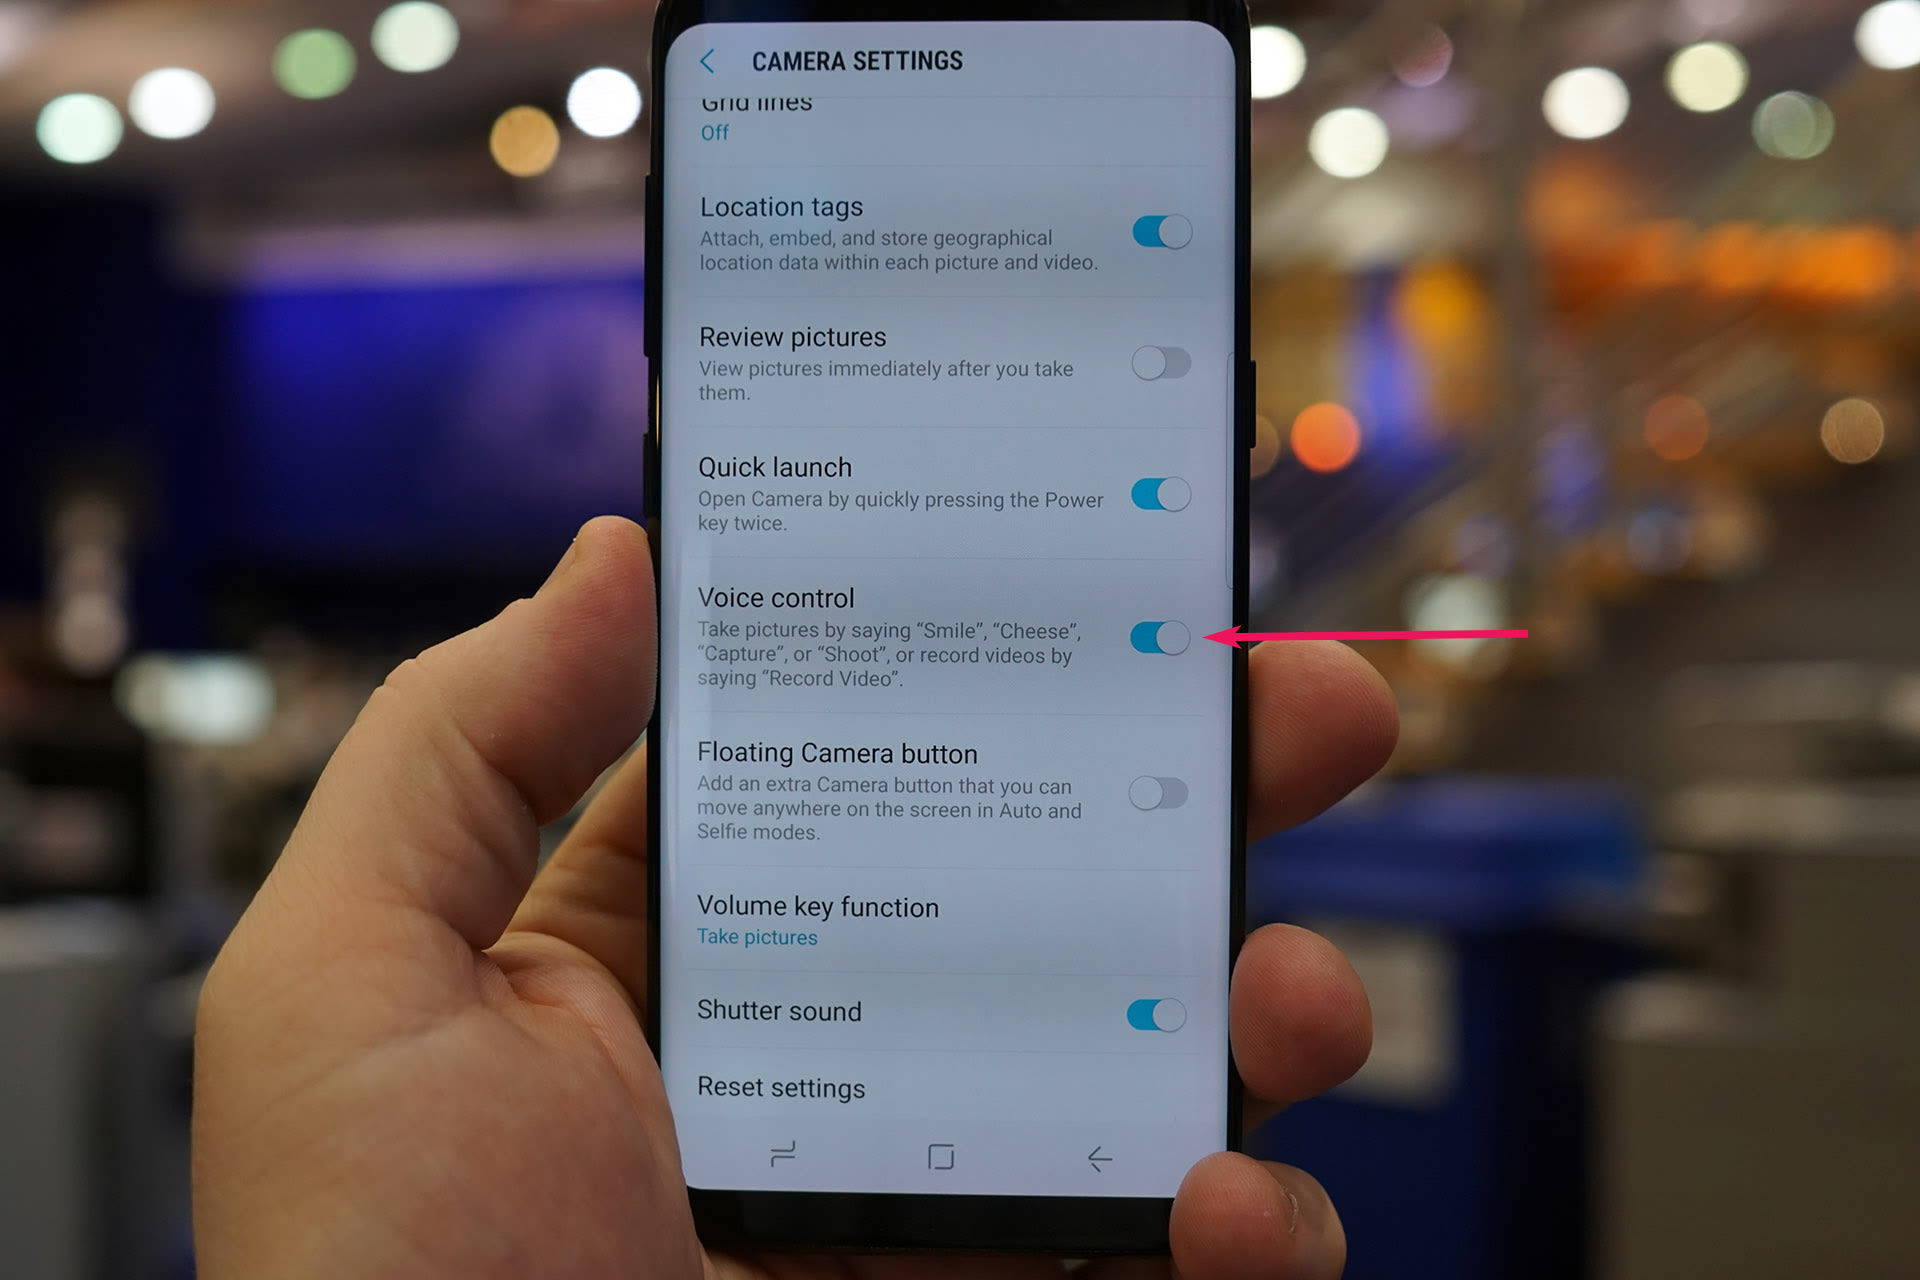 Change Security Features on Galaxy S8 & S8+